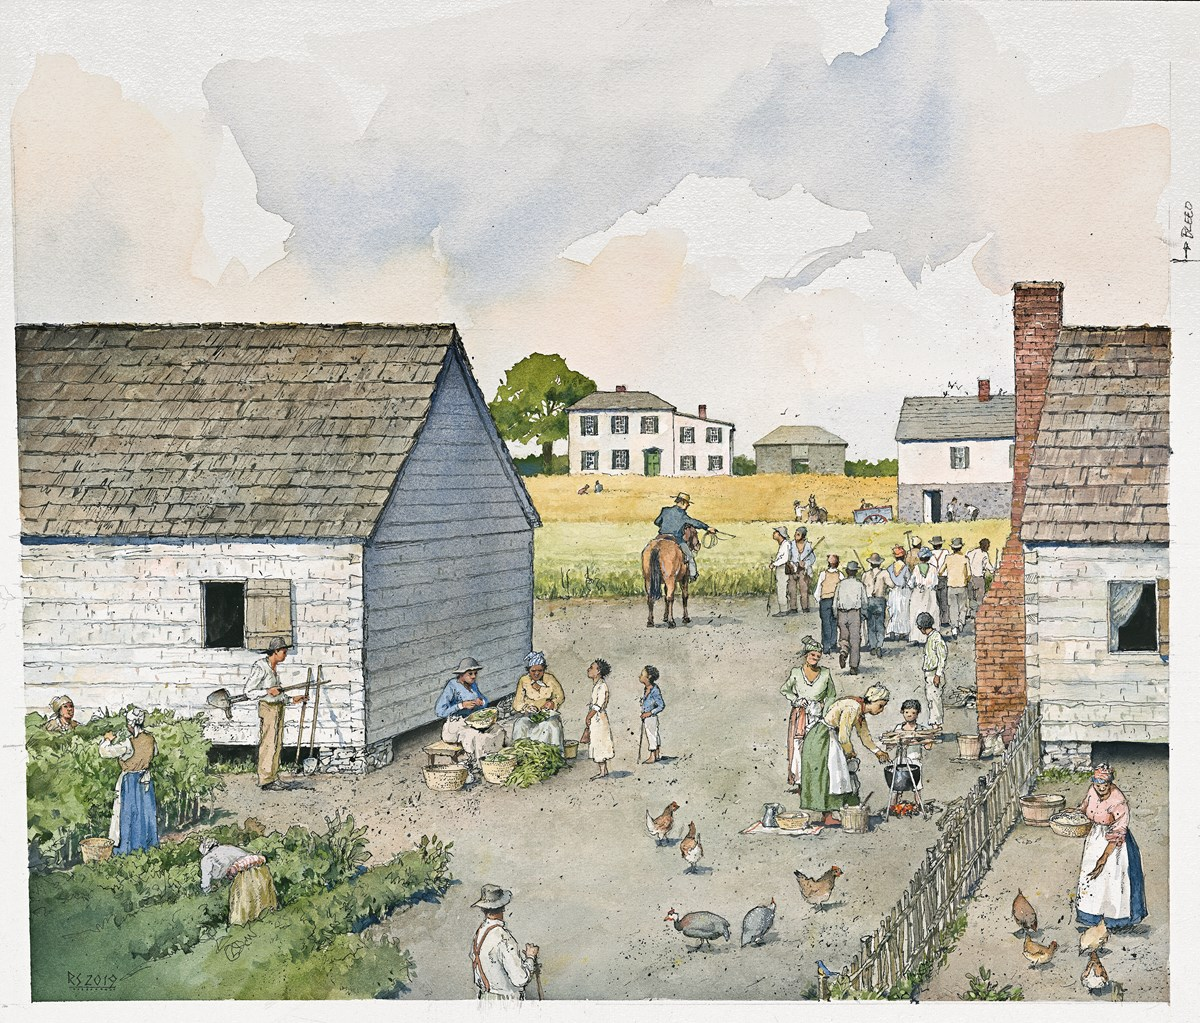 Artist's rendering of daily life in L'Hermitage slave village.